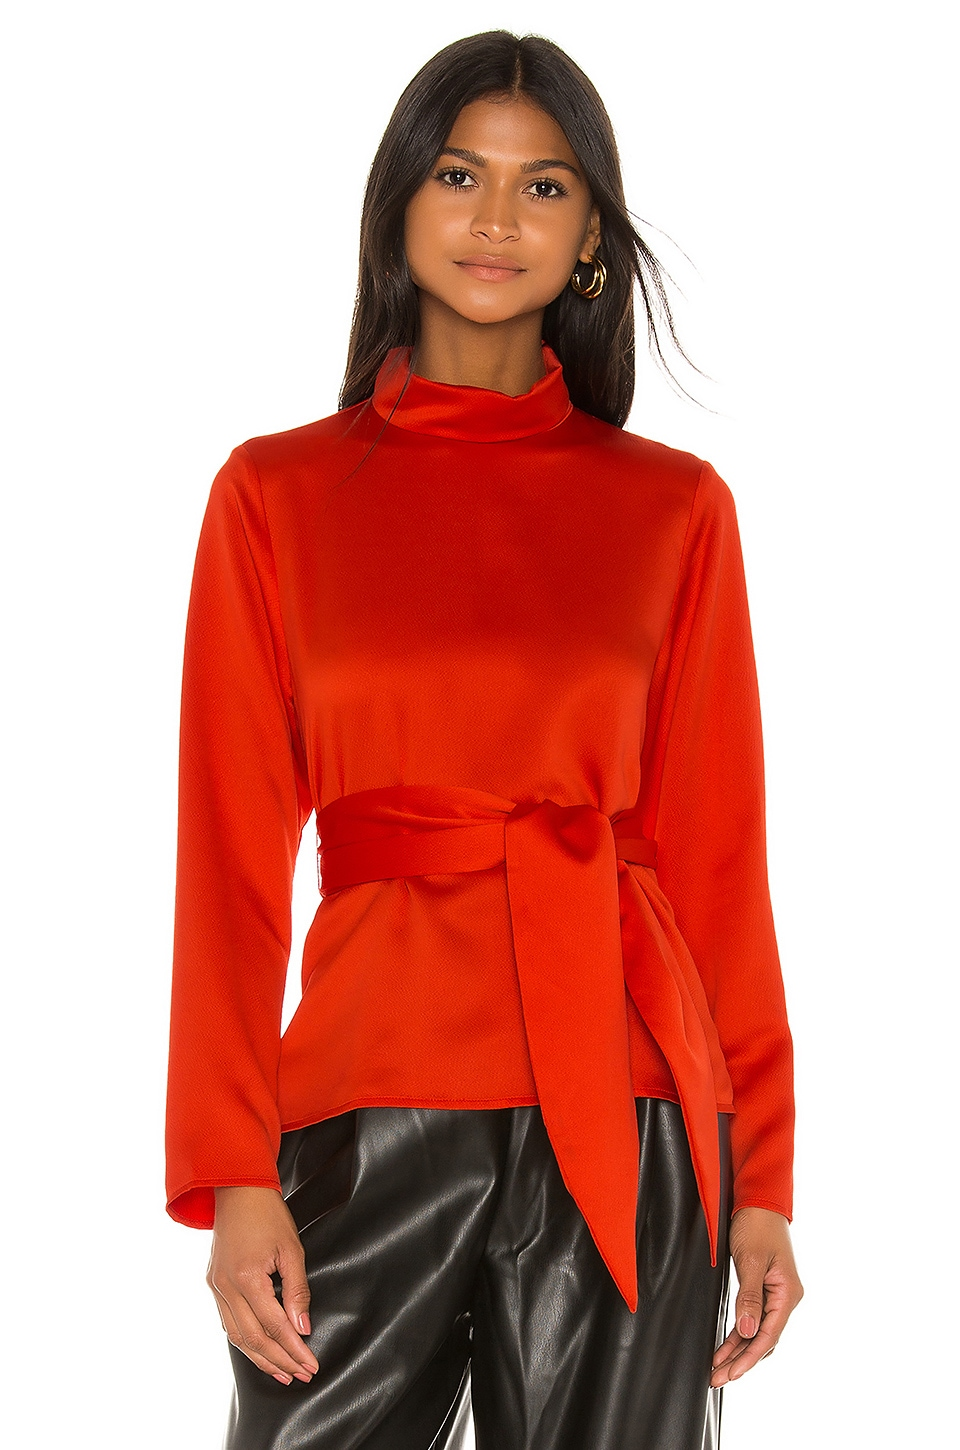 L'Academie The Ninette Top en Fiery Red